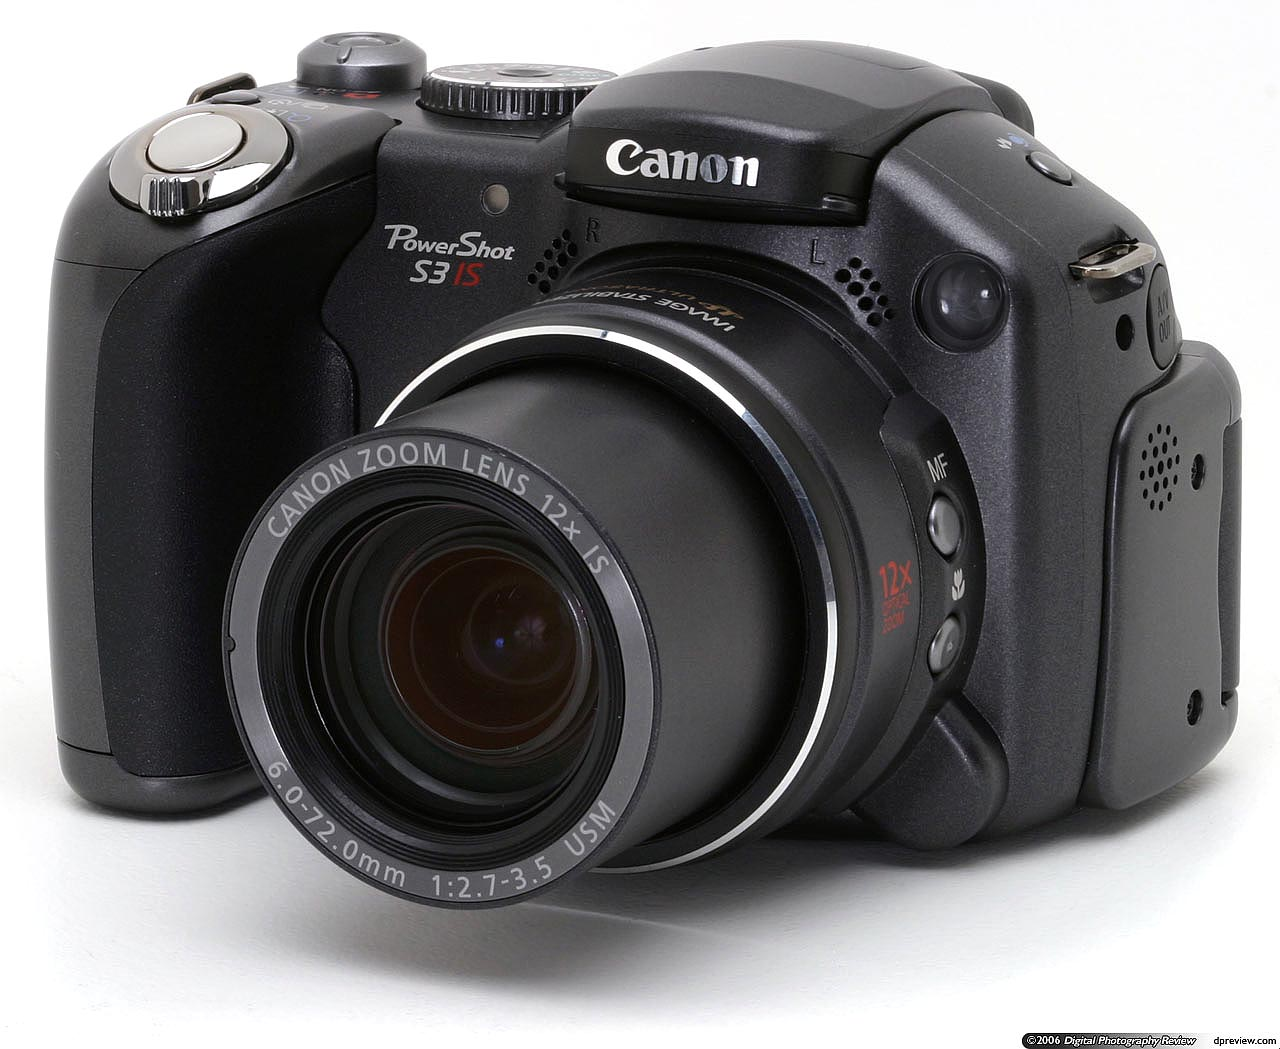 Digital Cameras becoming obsolete? - The future of digicams, smart ...